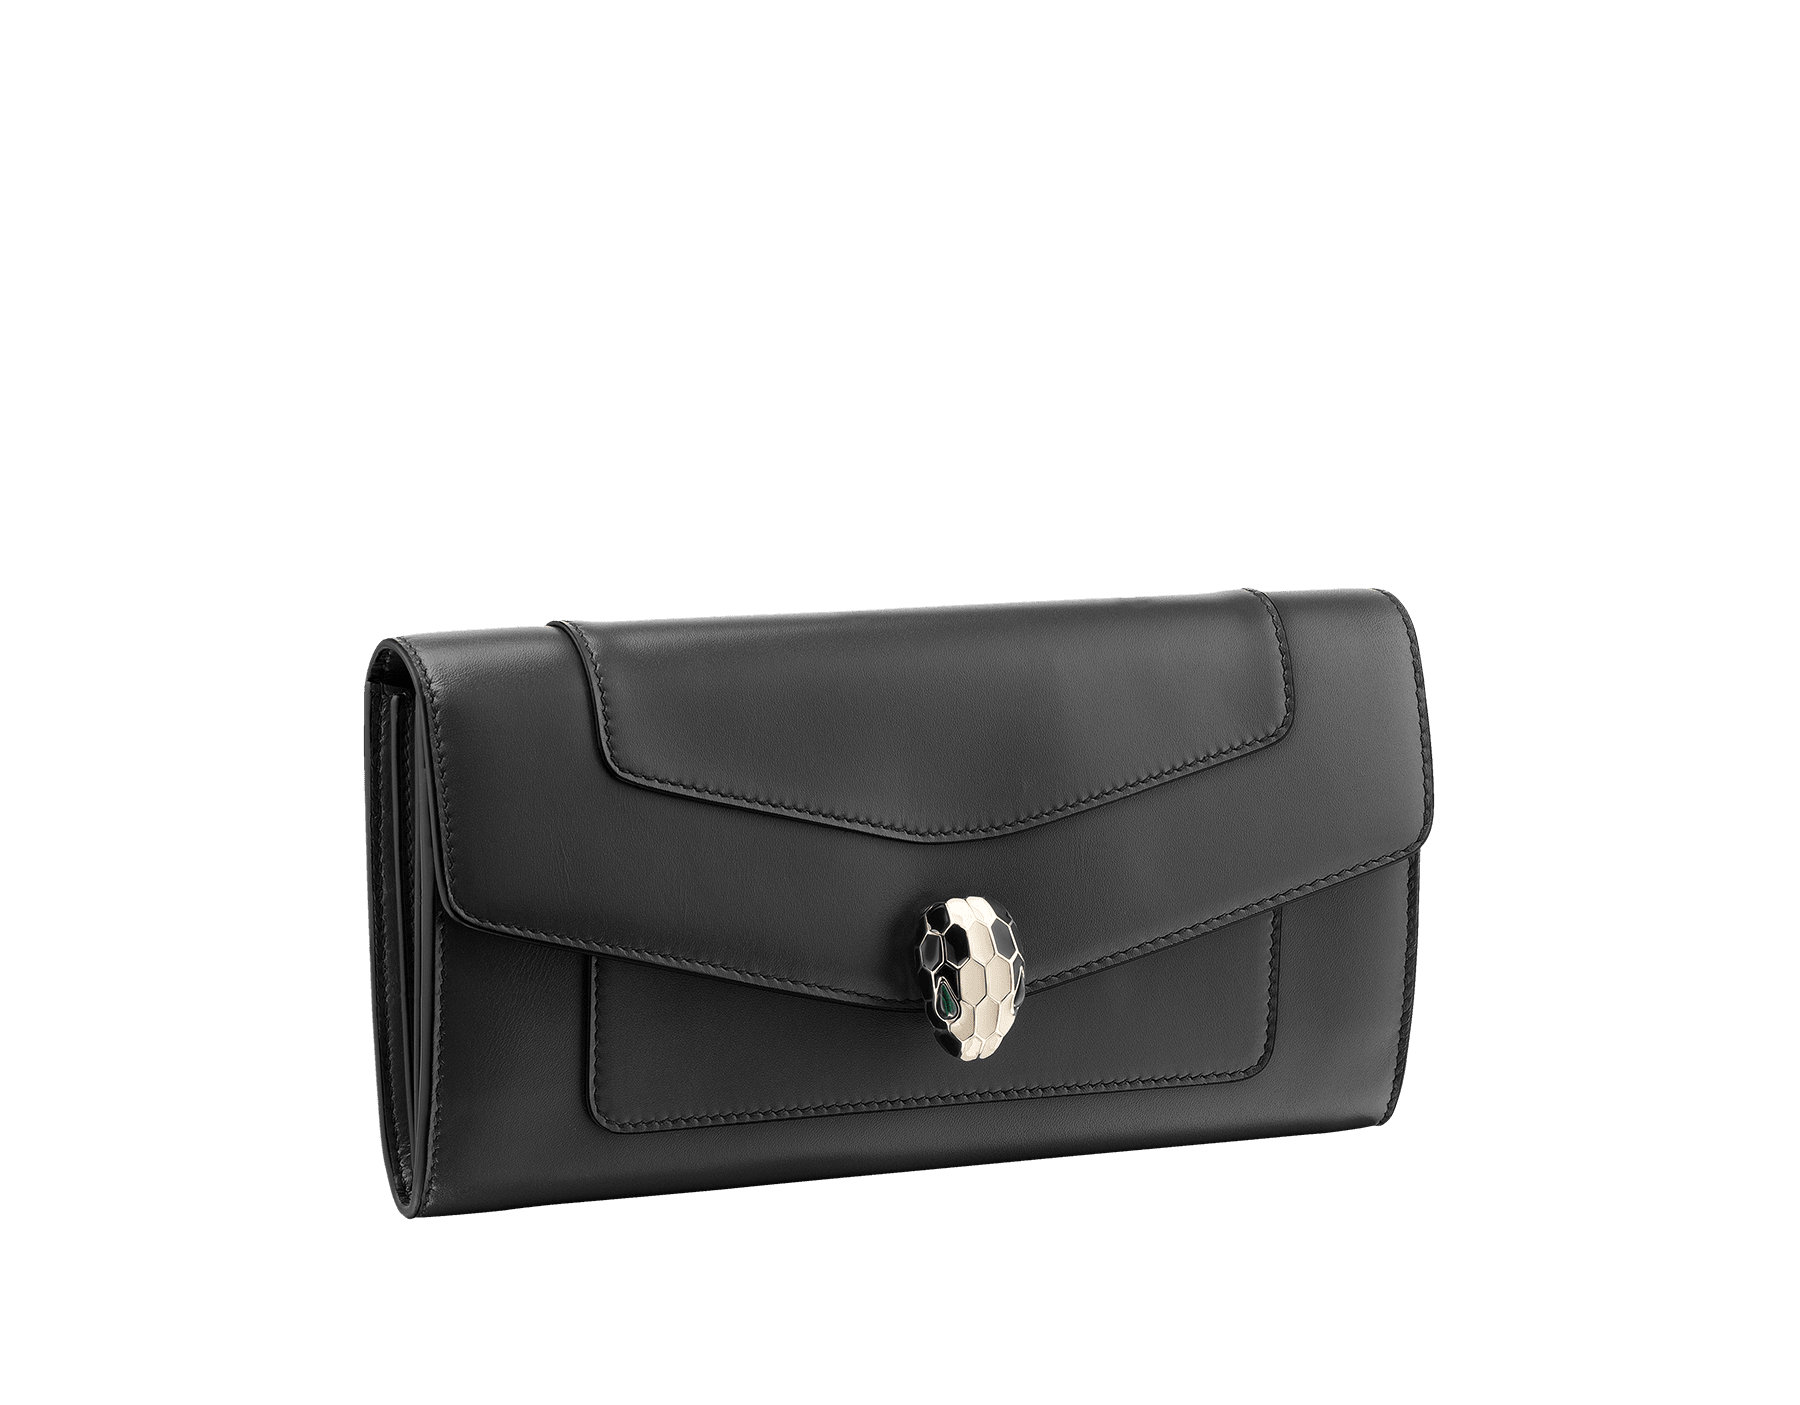 Wallet pochette in black and emerald green calf leather with brass light gold plated hardware.Serpenti head stud closure in black and white enamel with eyes in green malachite. 280353 image 1